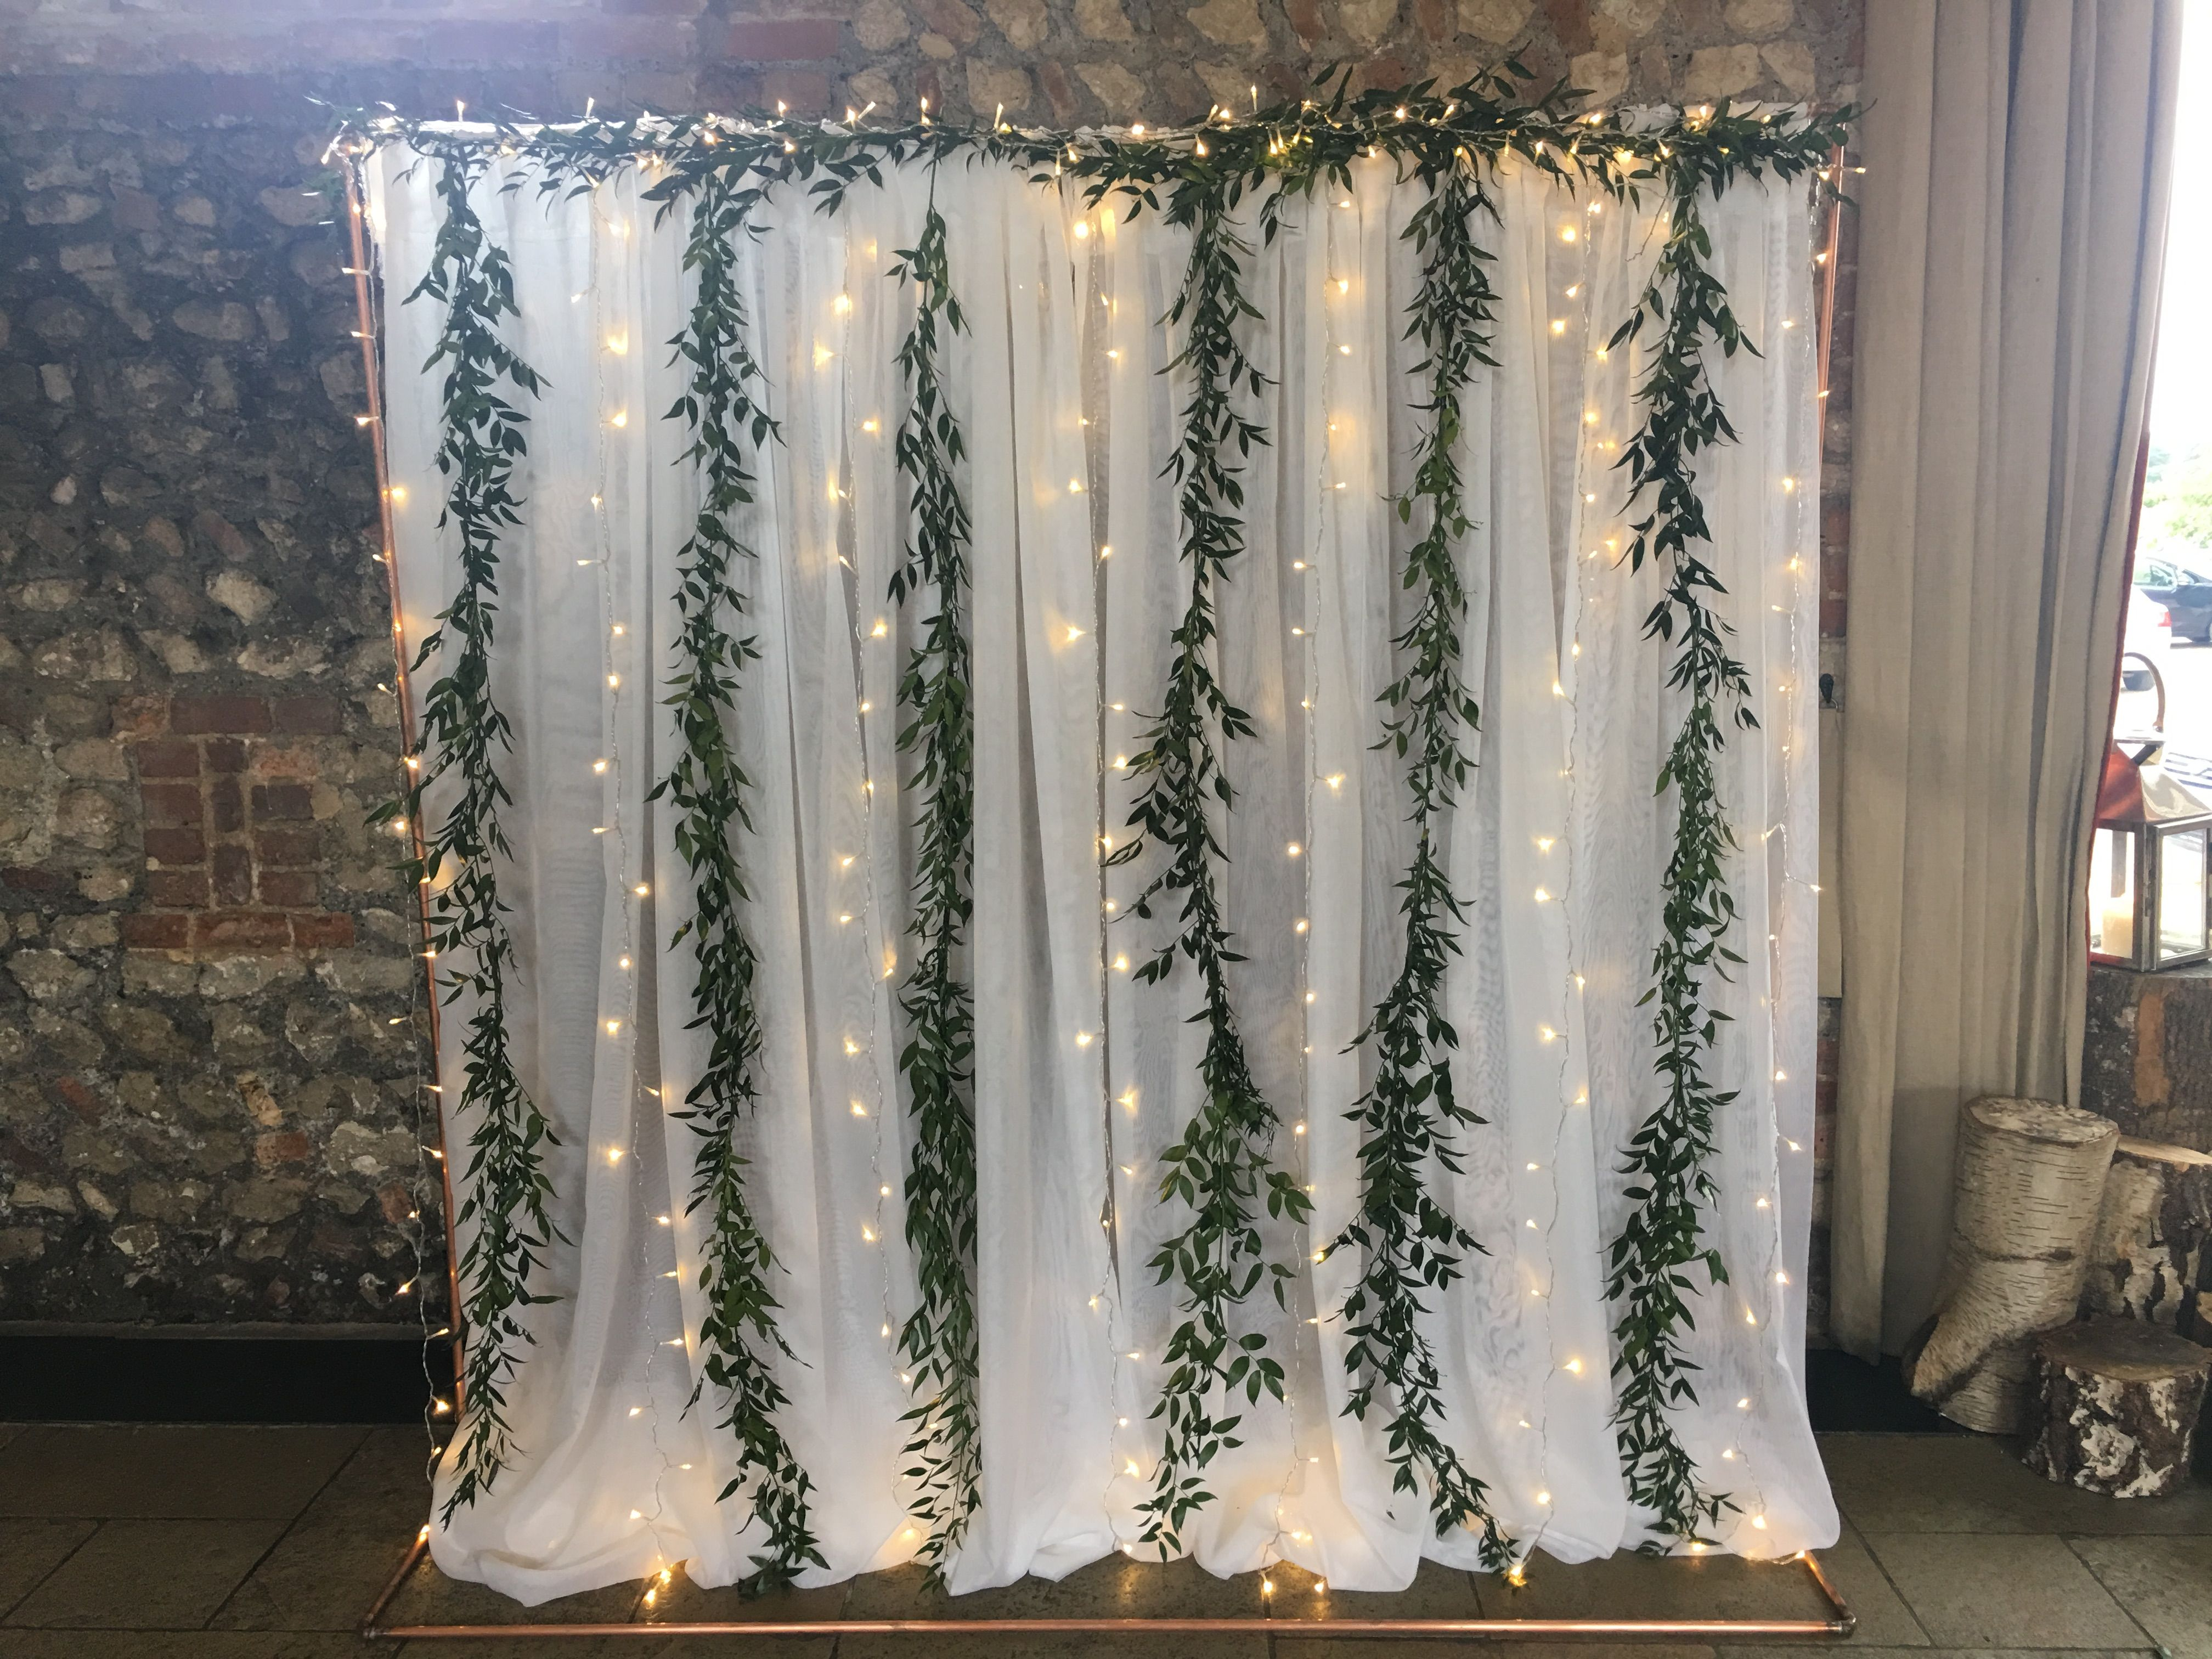 Wedding decorations stage backdrops october 2018 Copper pipe framed backdrop with cascading fairylights voile